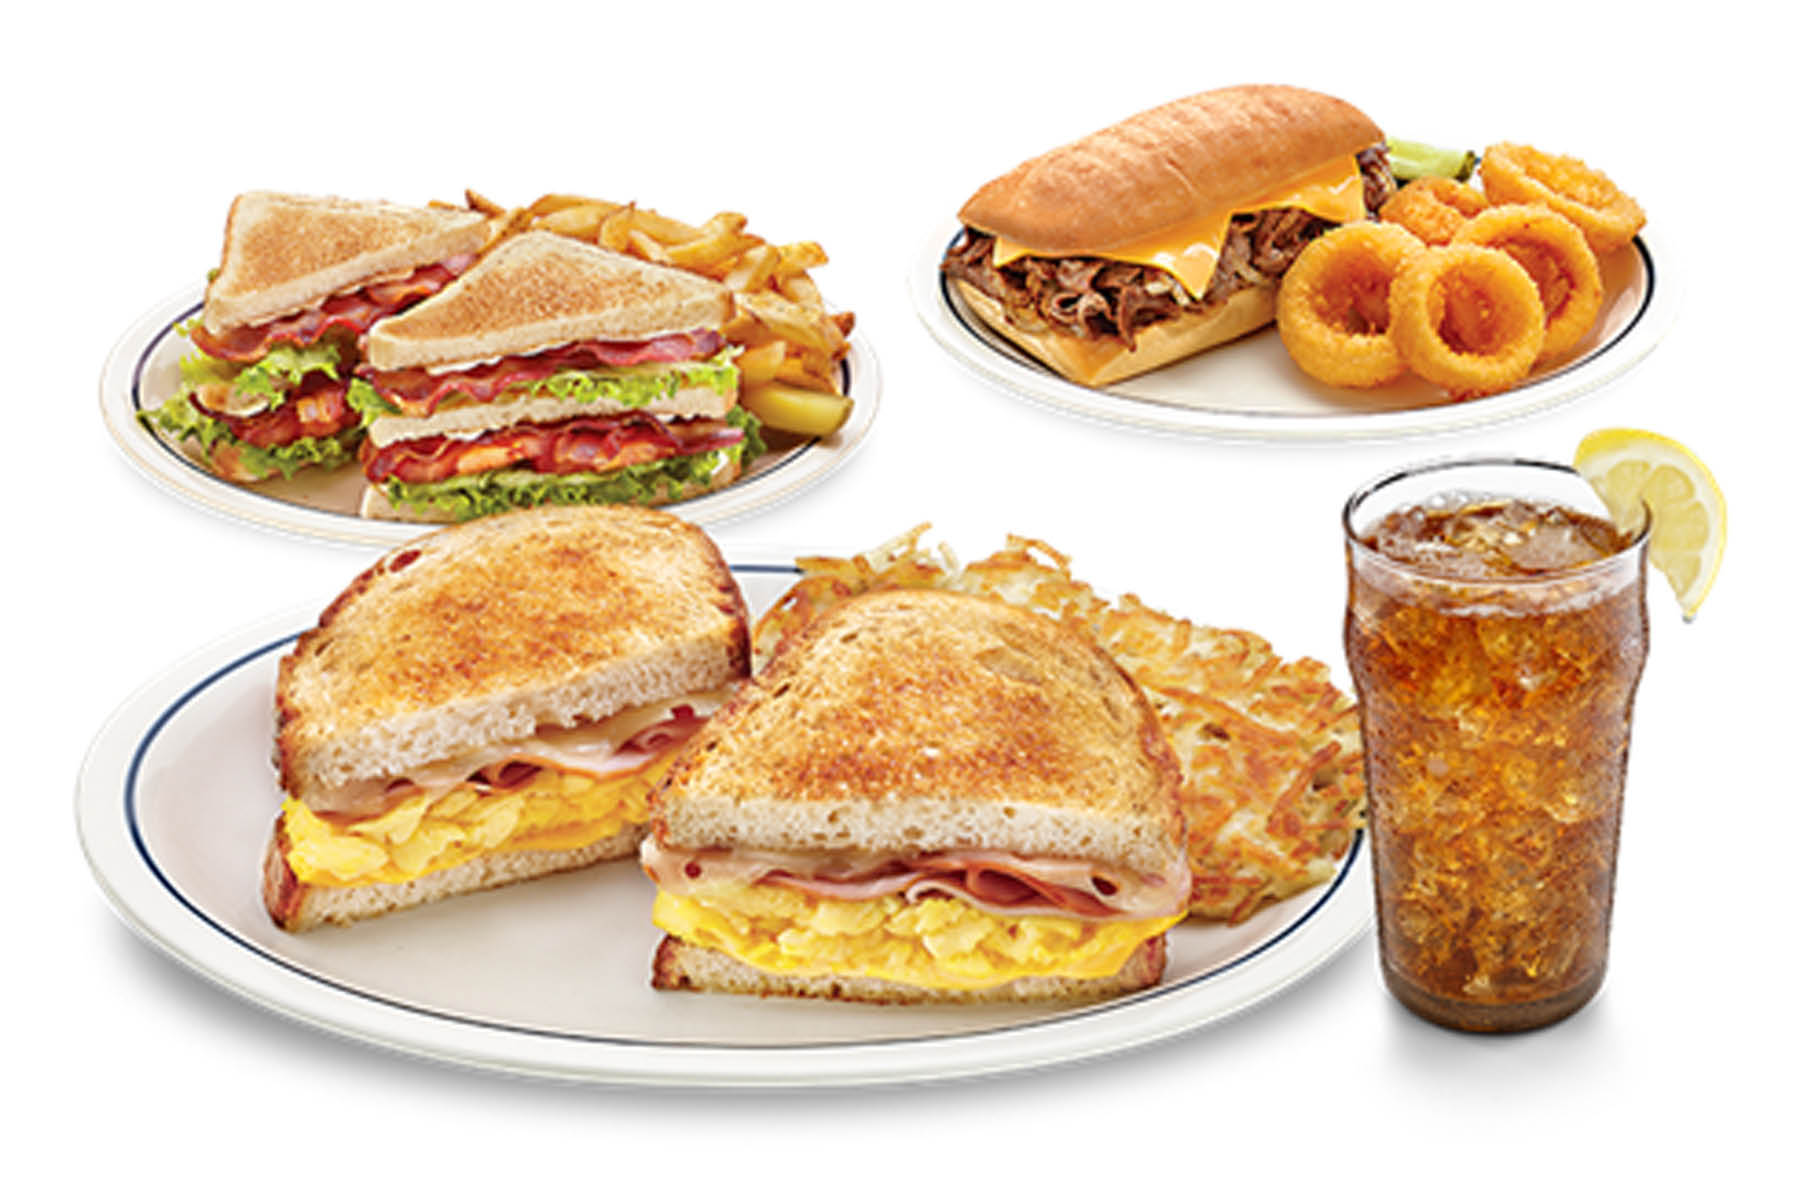 You need to sample IHOP's filling sandwiches anytime night and day.